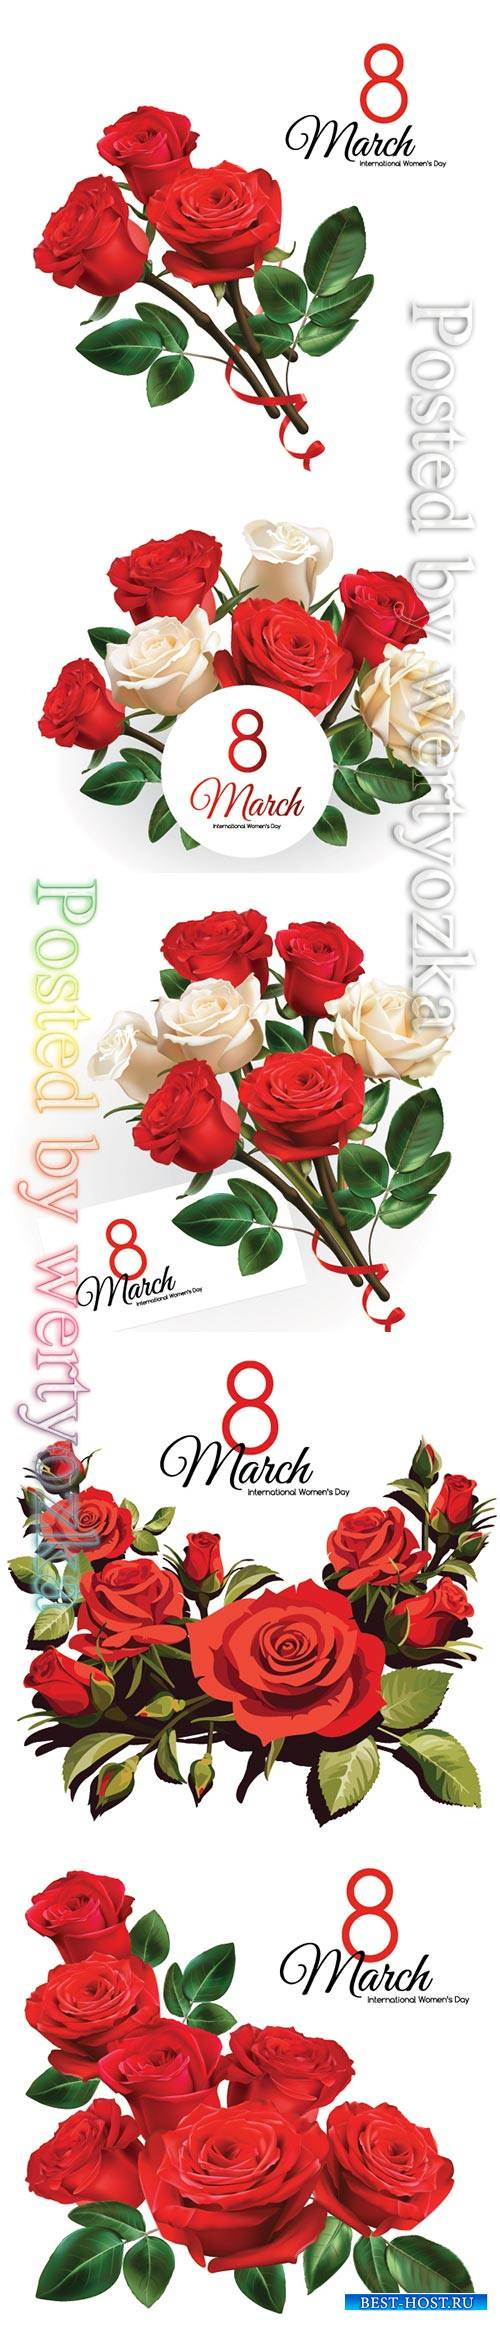 8 March Women's Day greeting card template with red roses